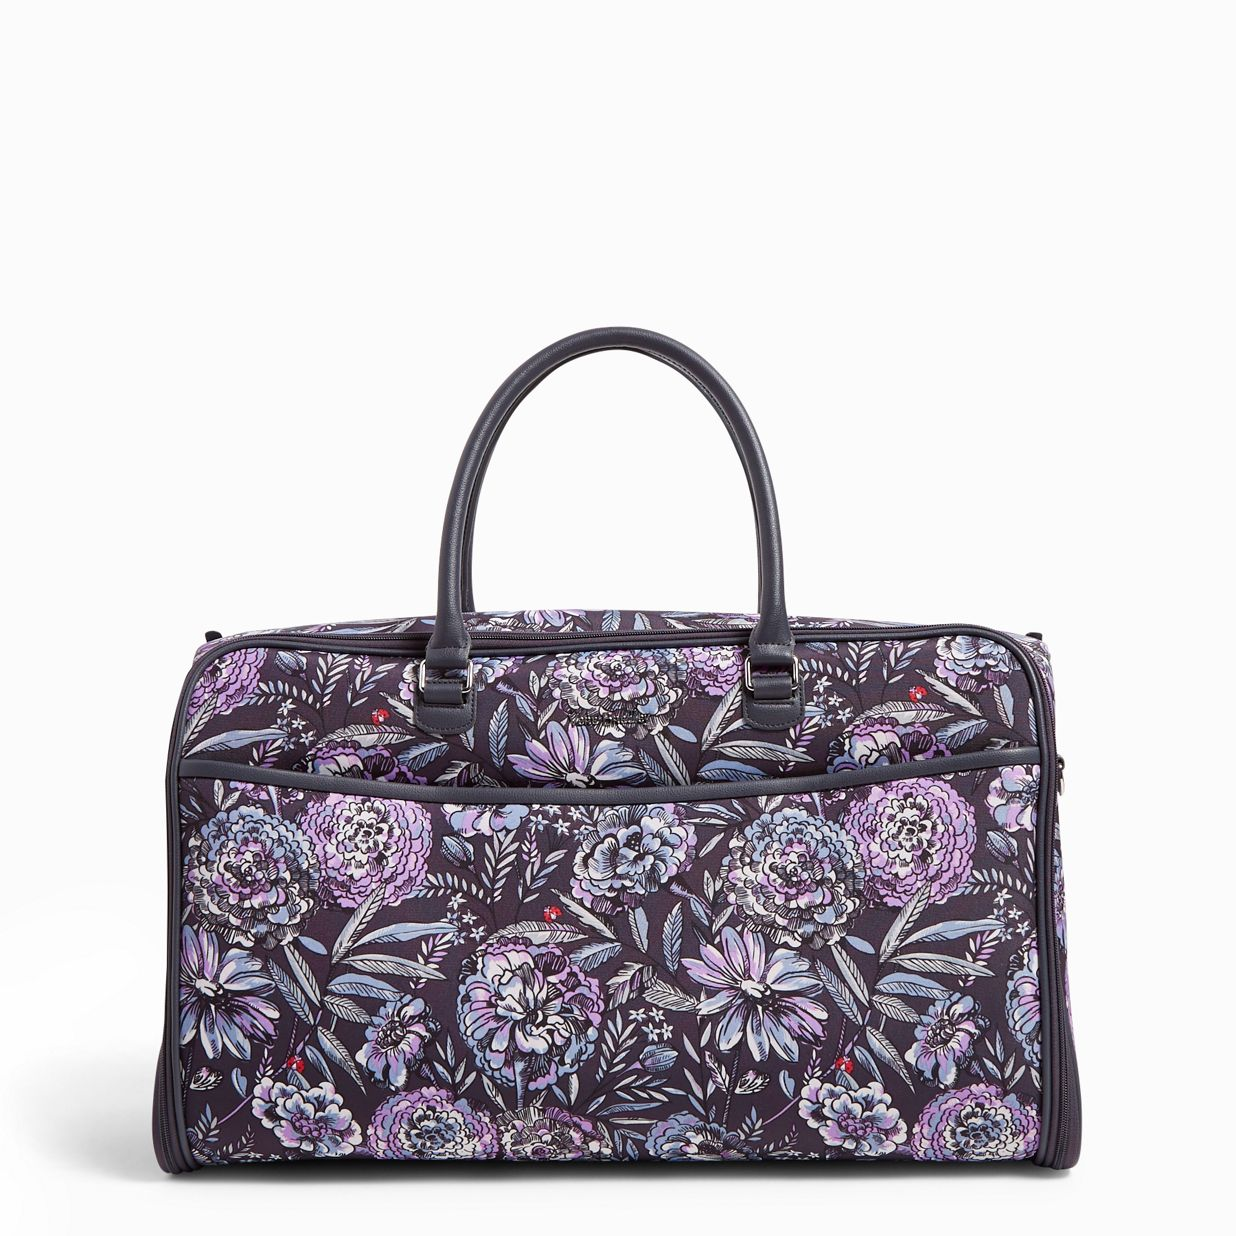 7f7a8b5ccf Image of Iconic Convertible Garment Bag in Lavender Bouquet ...